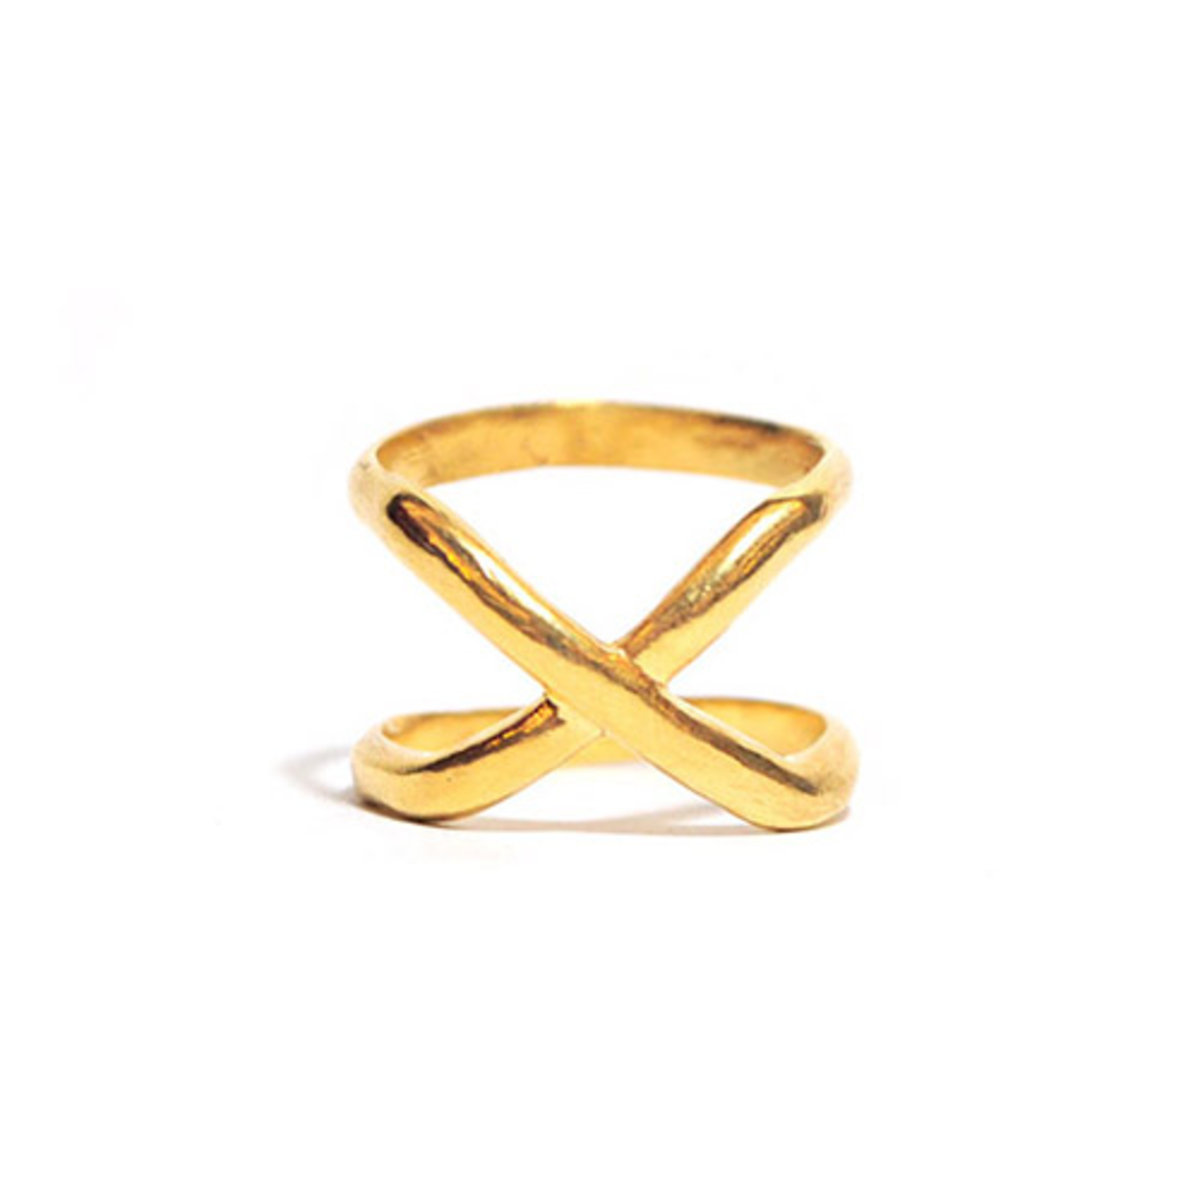 x ring - gold